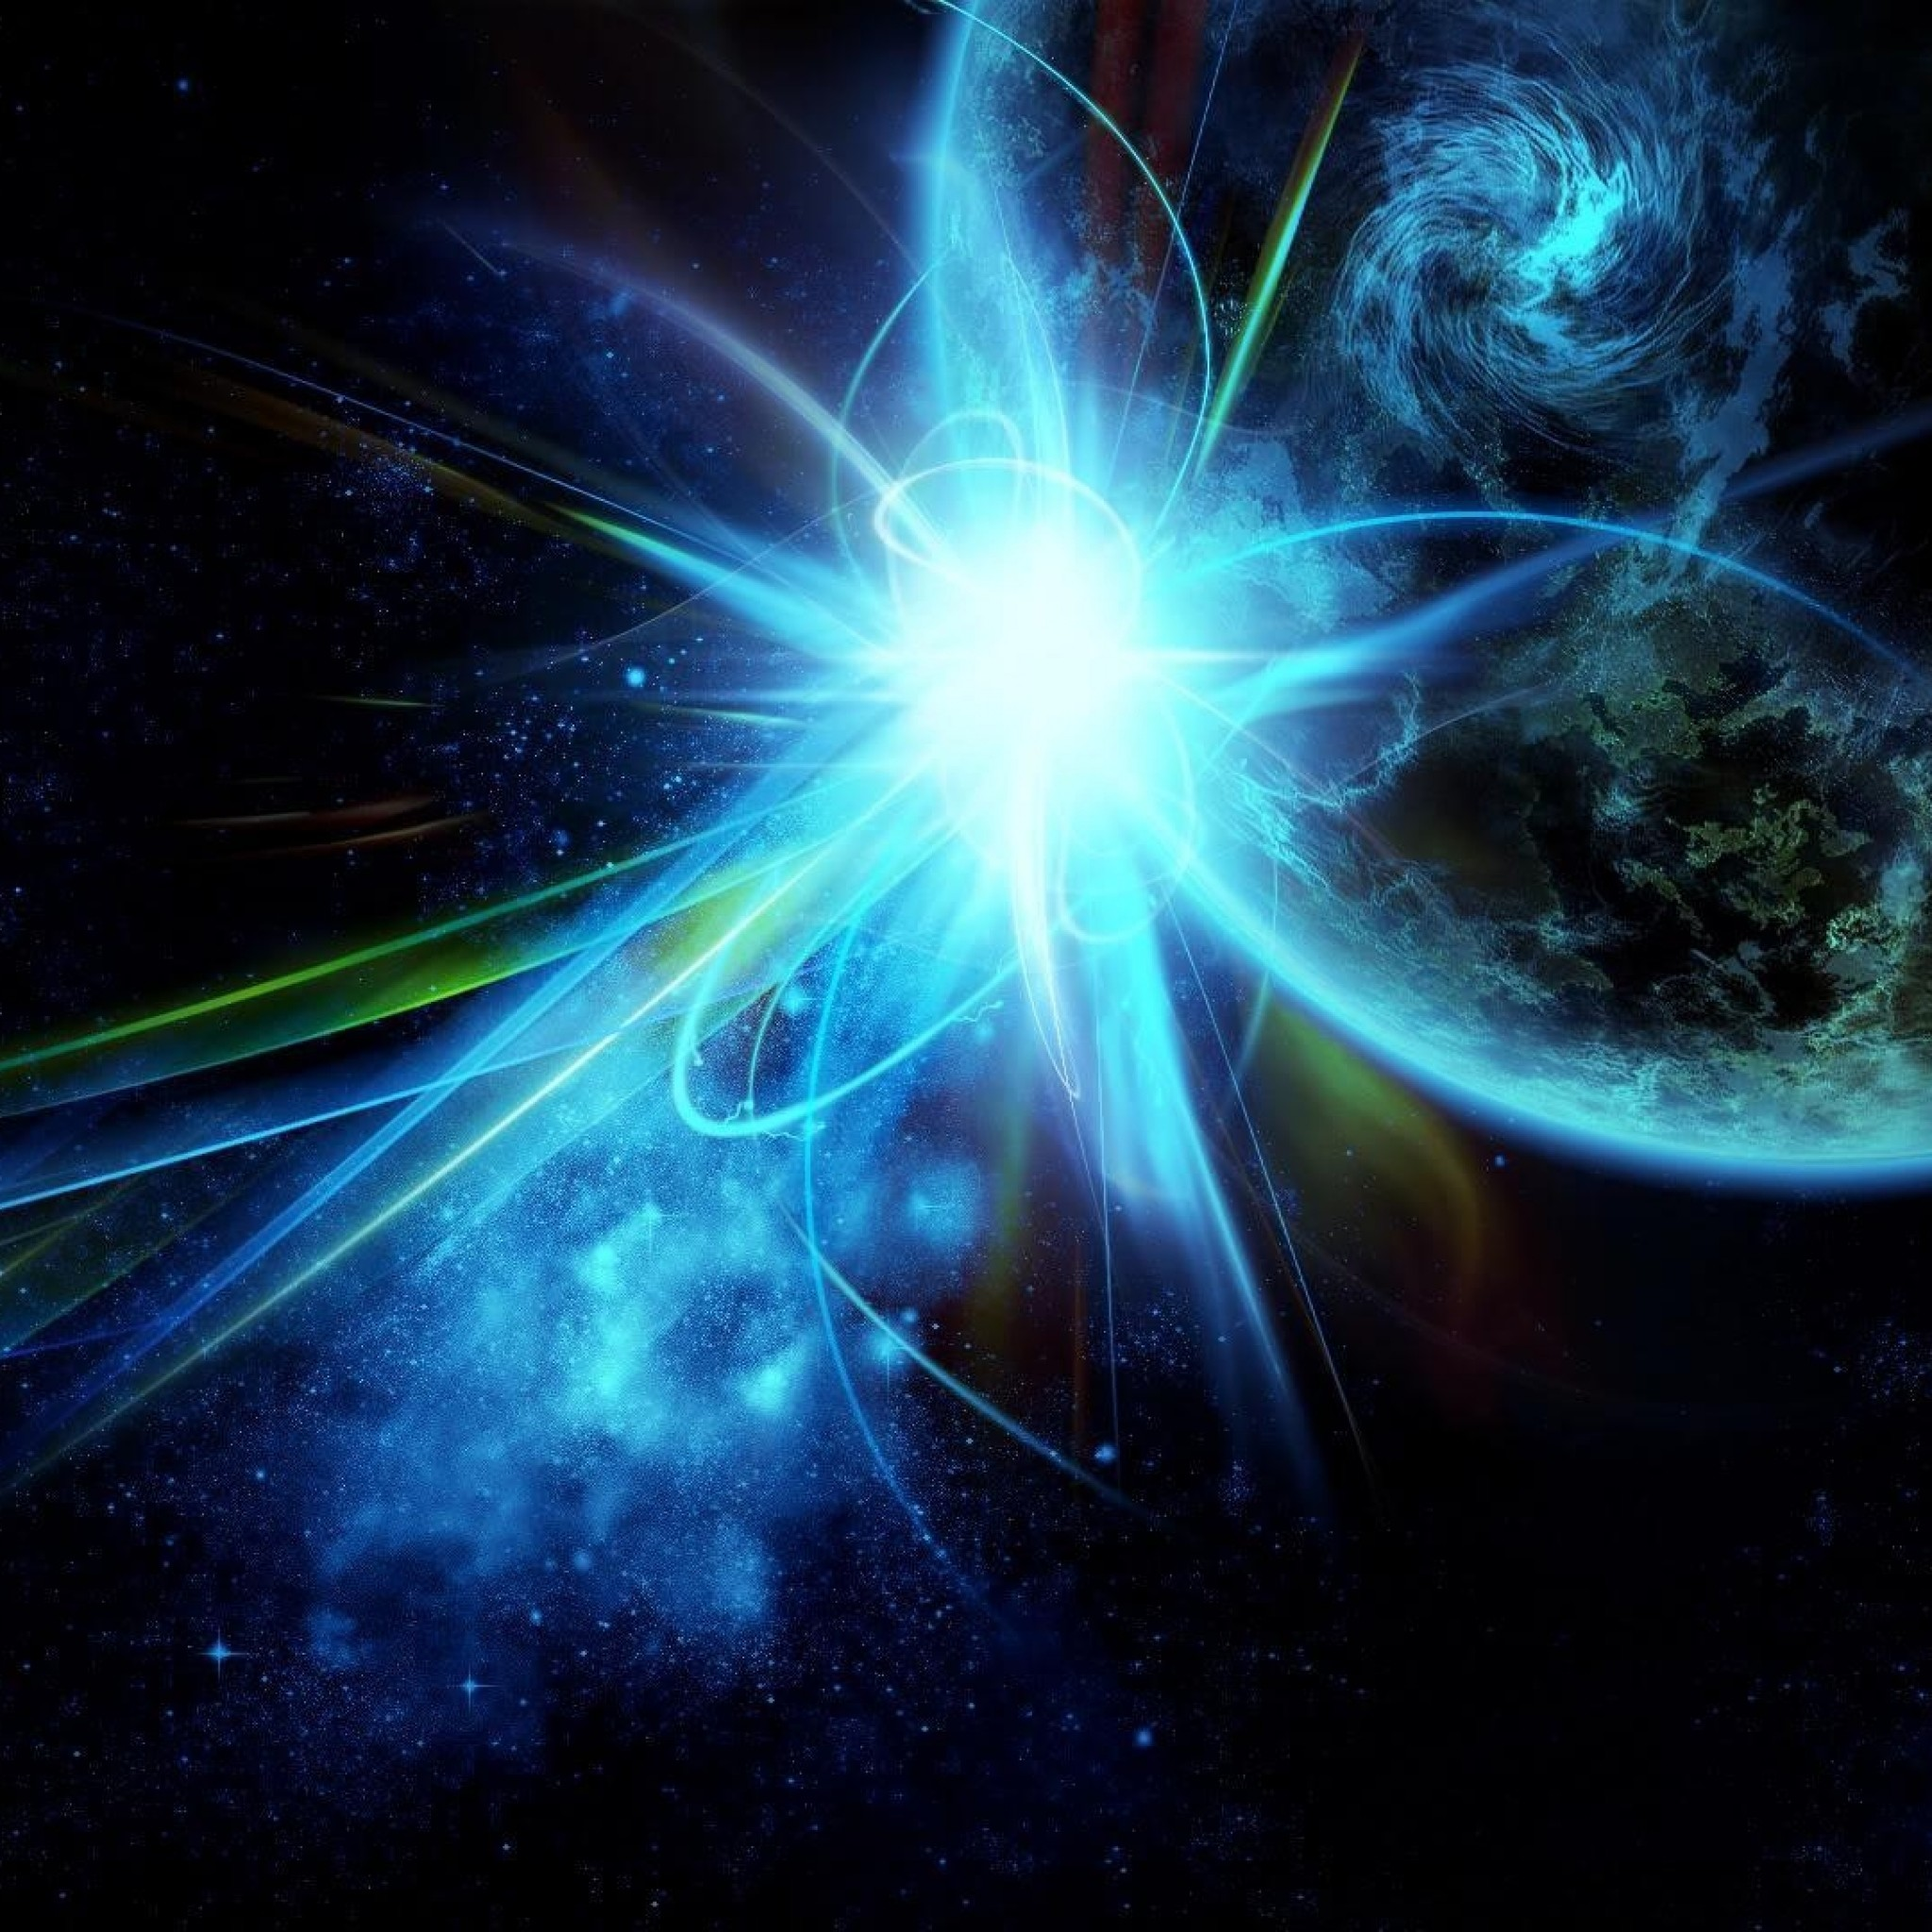 Abstract Space Wallpaper (75+ Images